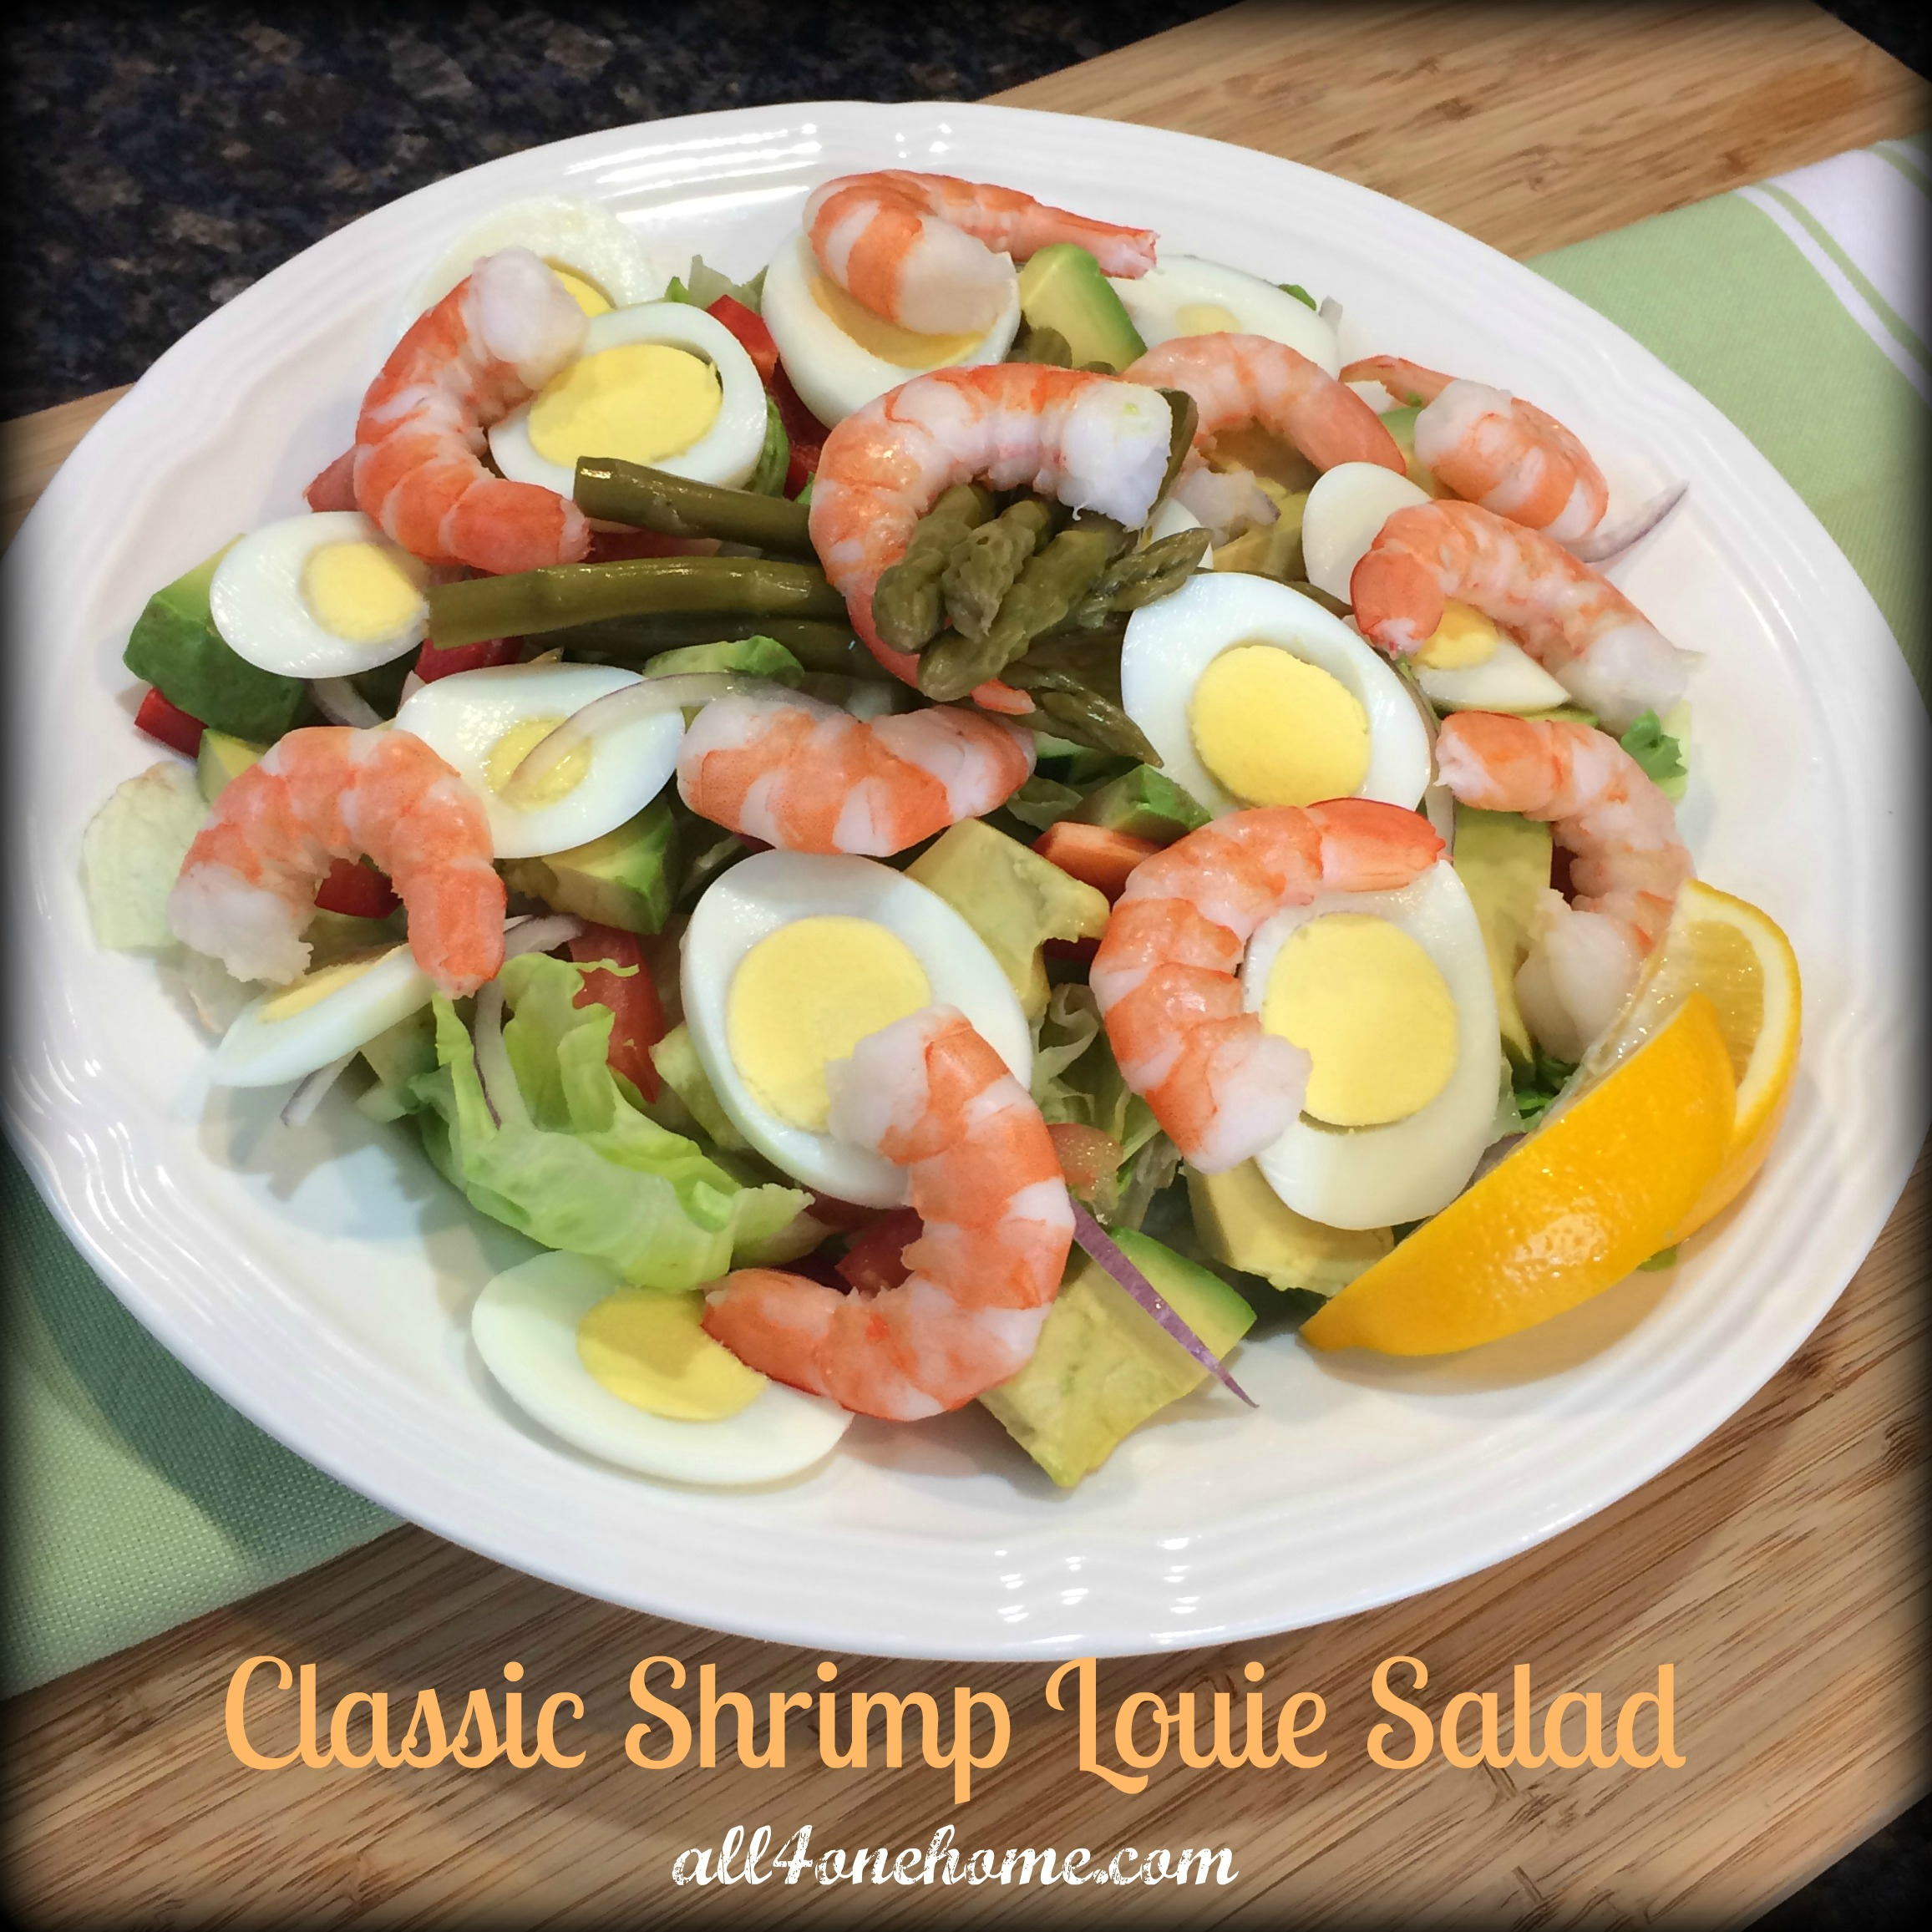 Classic Shrimp Louie Salad